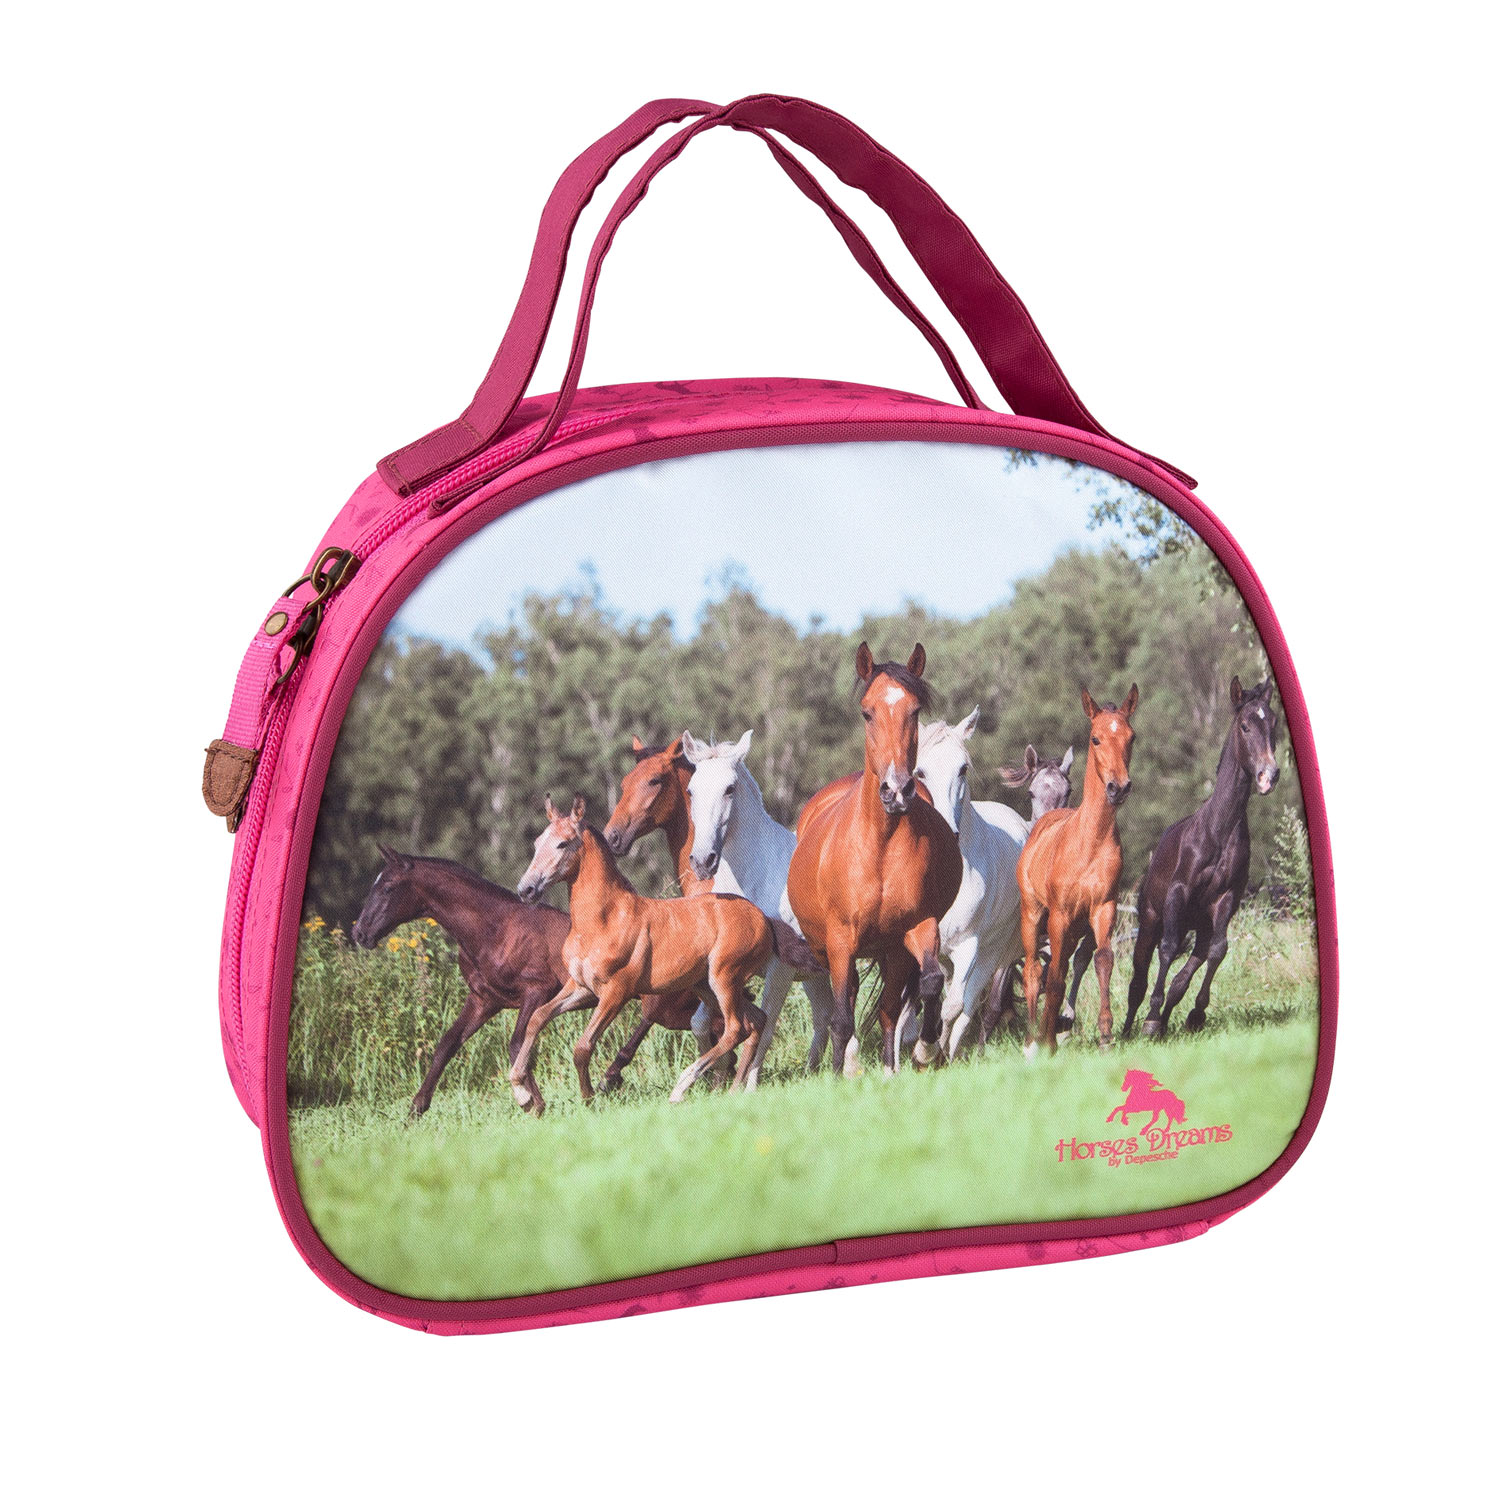 Horses Dream Beauty Case